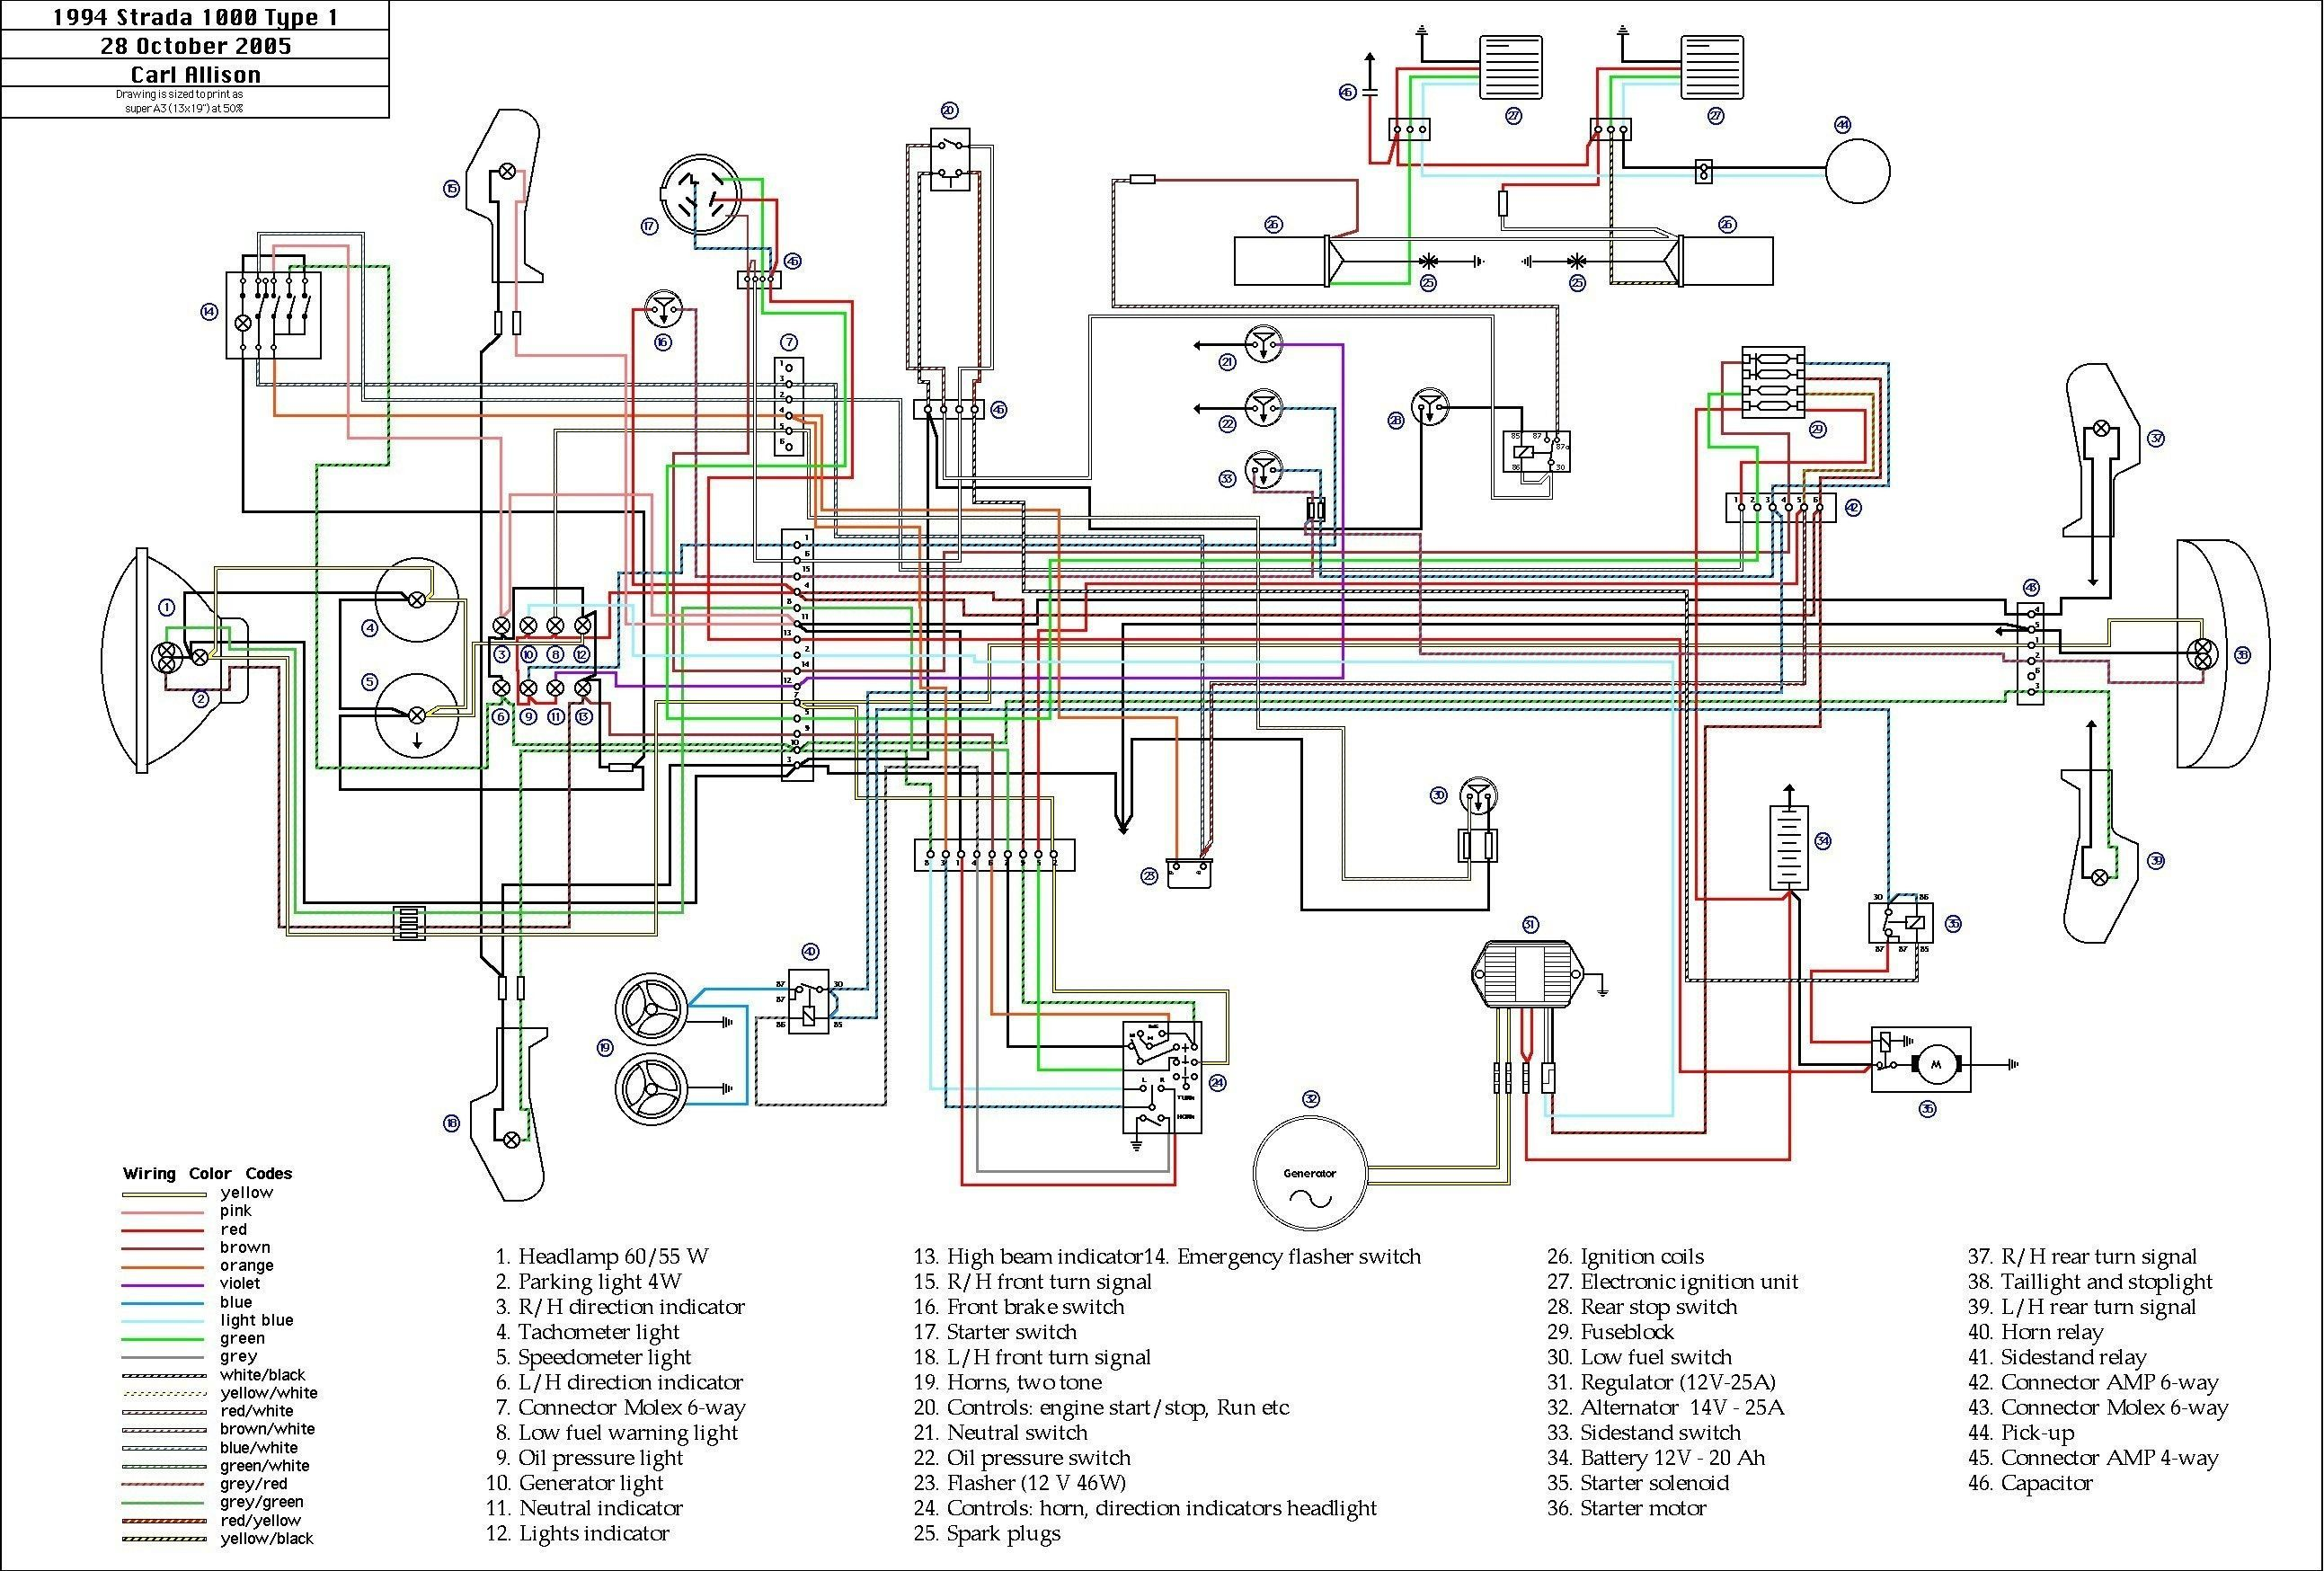 Diagramtemplate Diagramformats Diagramsample Cluster Diagram Wiring New Bmw Enew Bmw E46 Cluster Wiring Diagram Opel Corsa Trailer Wiring Diagram Opel